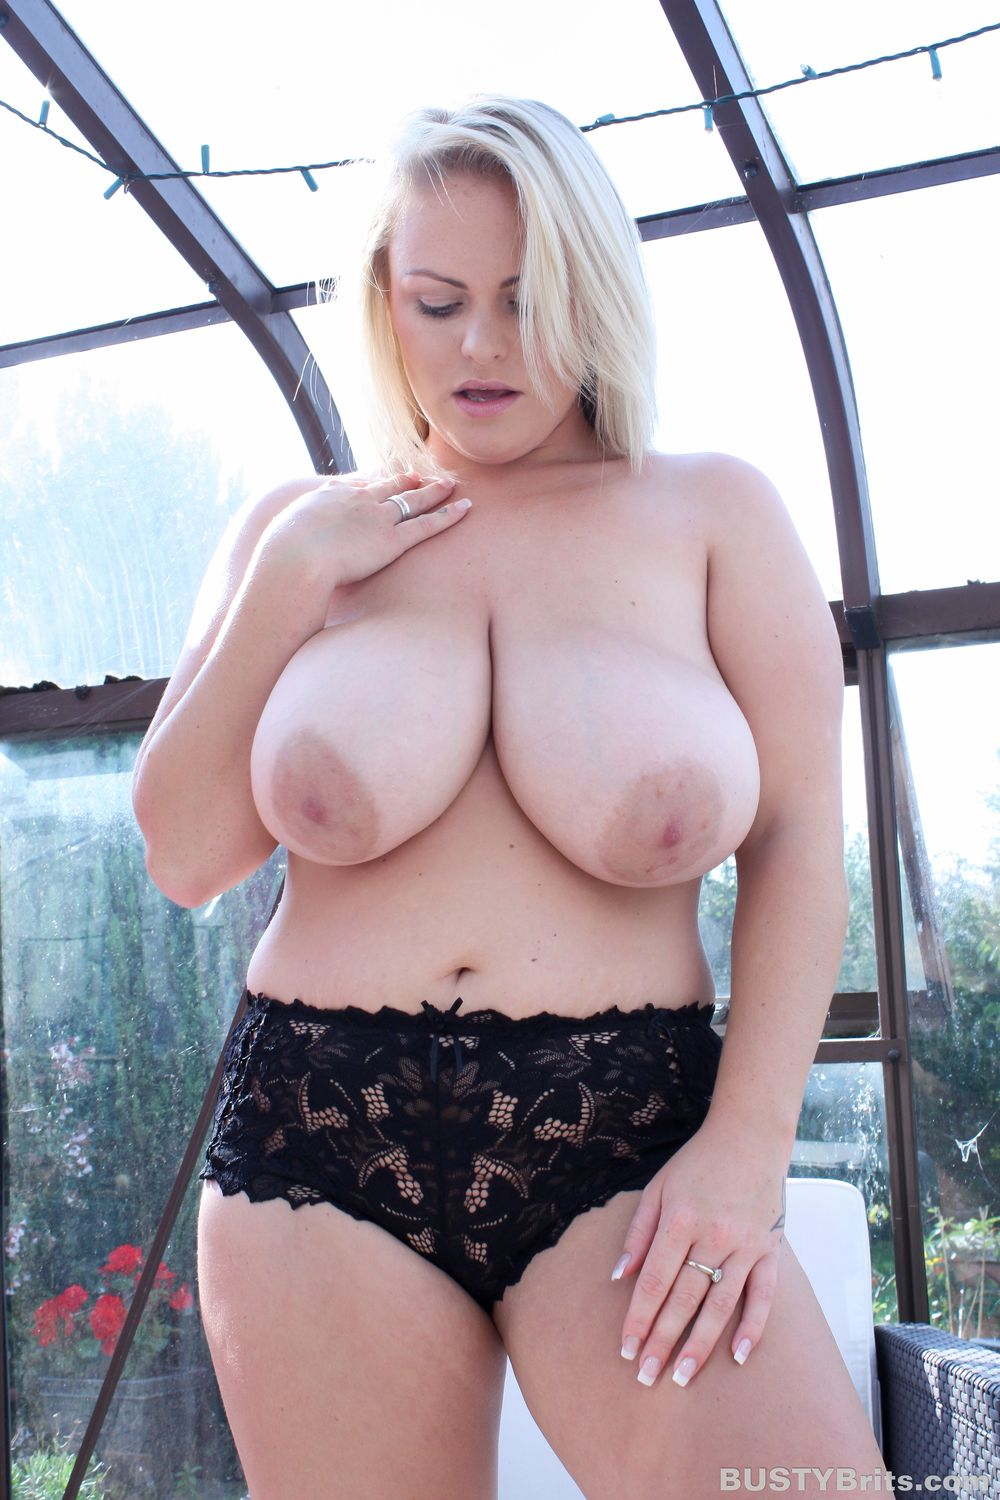 Witness The Awesome Natural Boobs Of The Delectable Charley Green